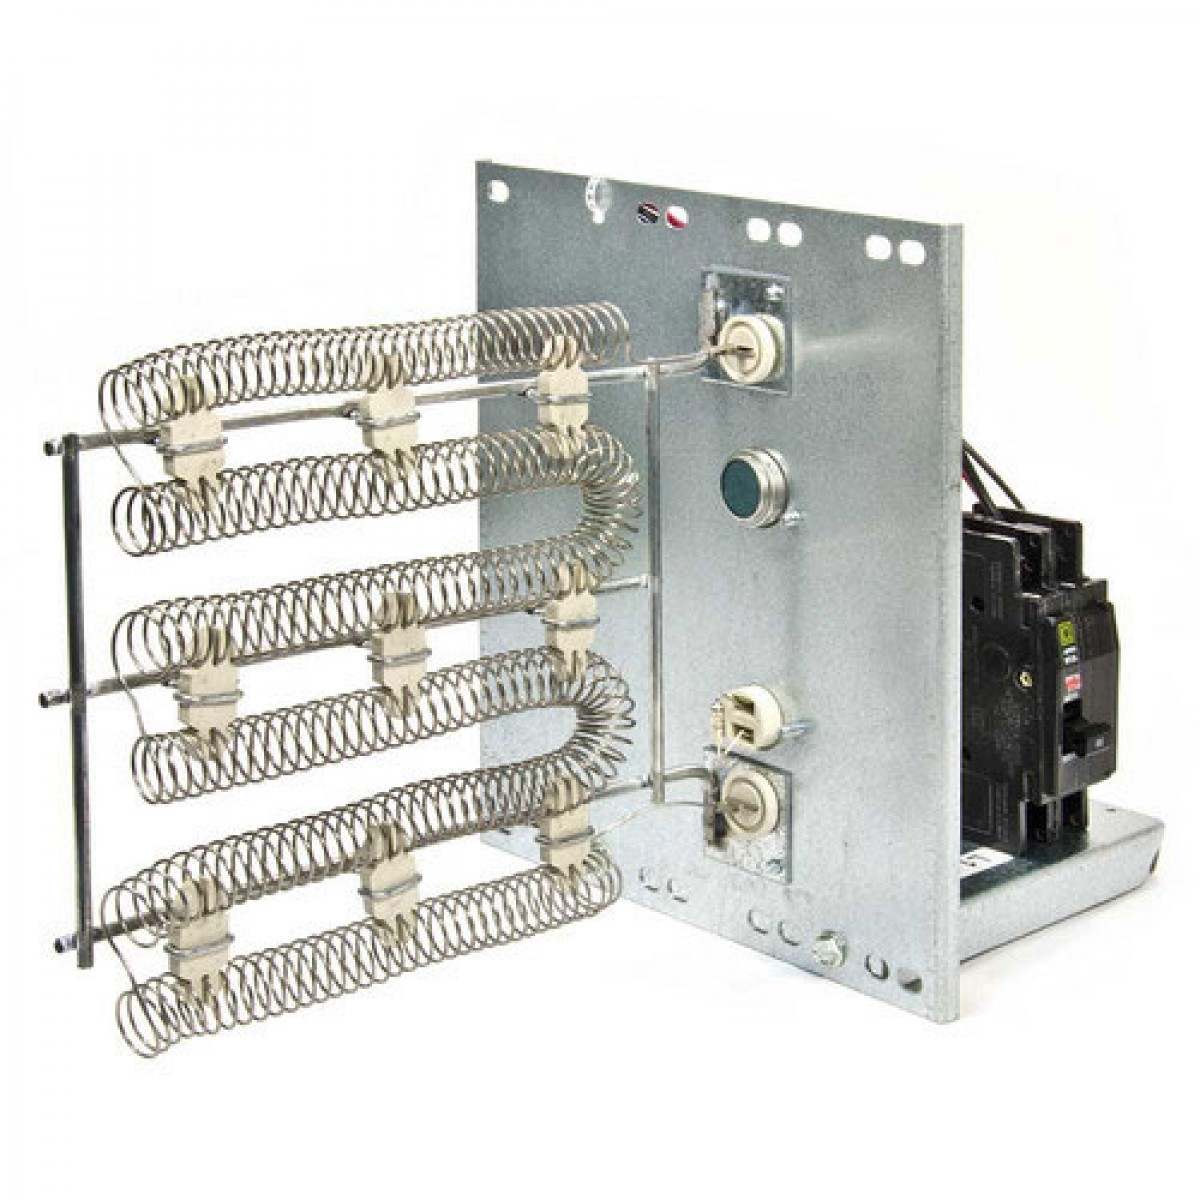 Excellent 5 Kw Goodman Hksx05Xc Electric Heat Kits For Air Handlers Heaters Wiring Cloud Ostrrenstrafr09Org